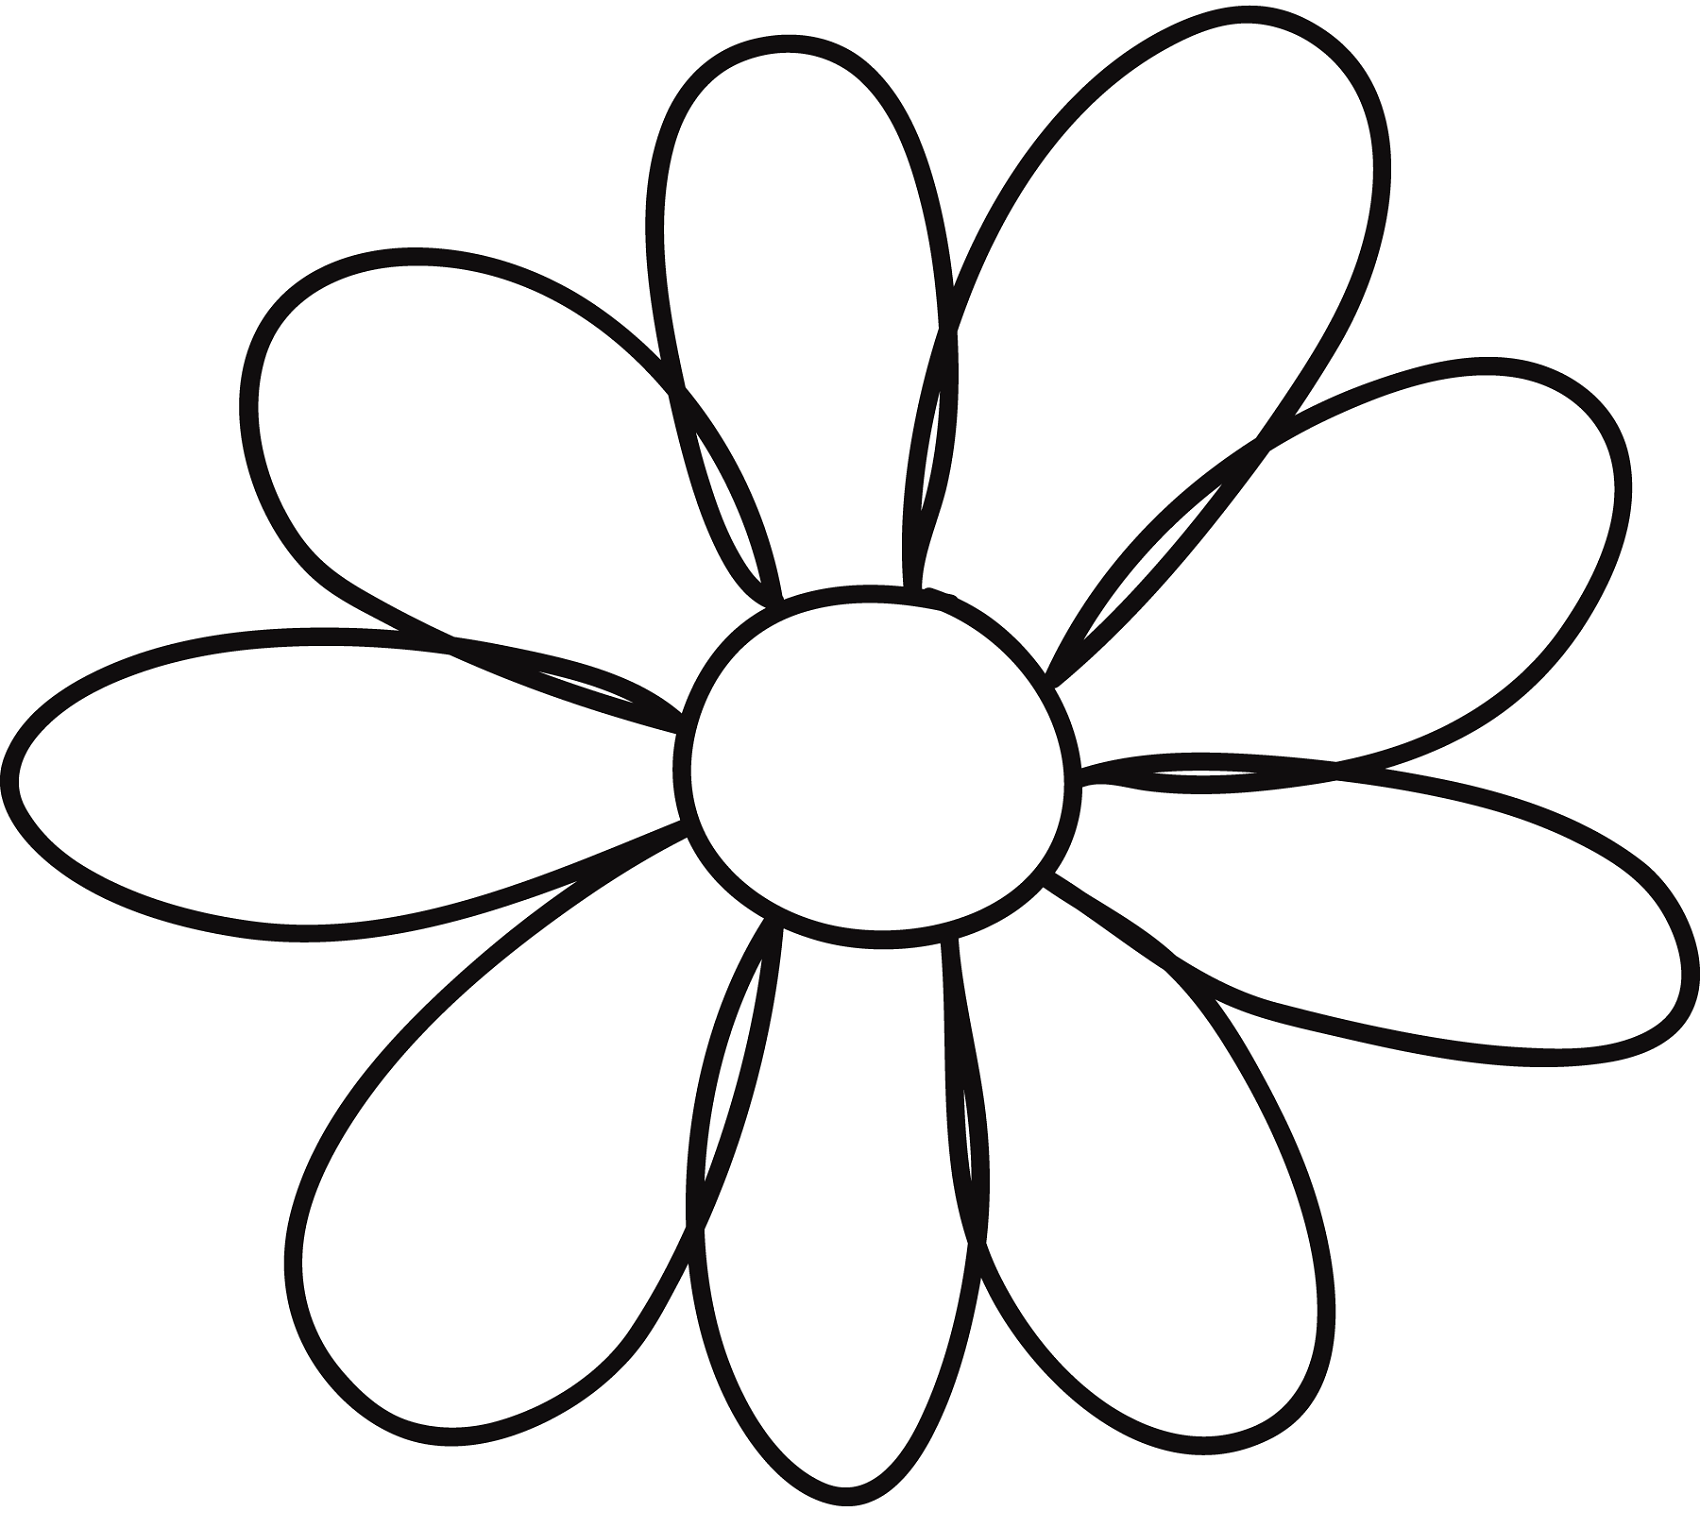 outline pictures of flowers for colouring flower template for children39s activities activity shelter colouring outline pictures of for flowers